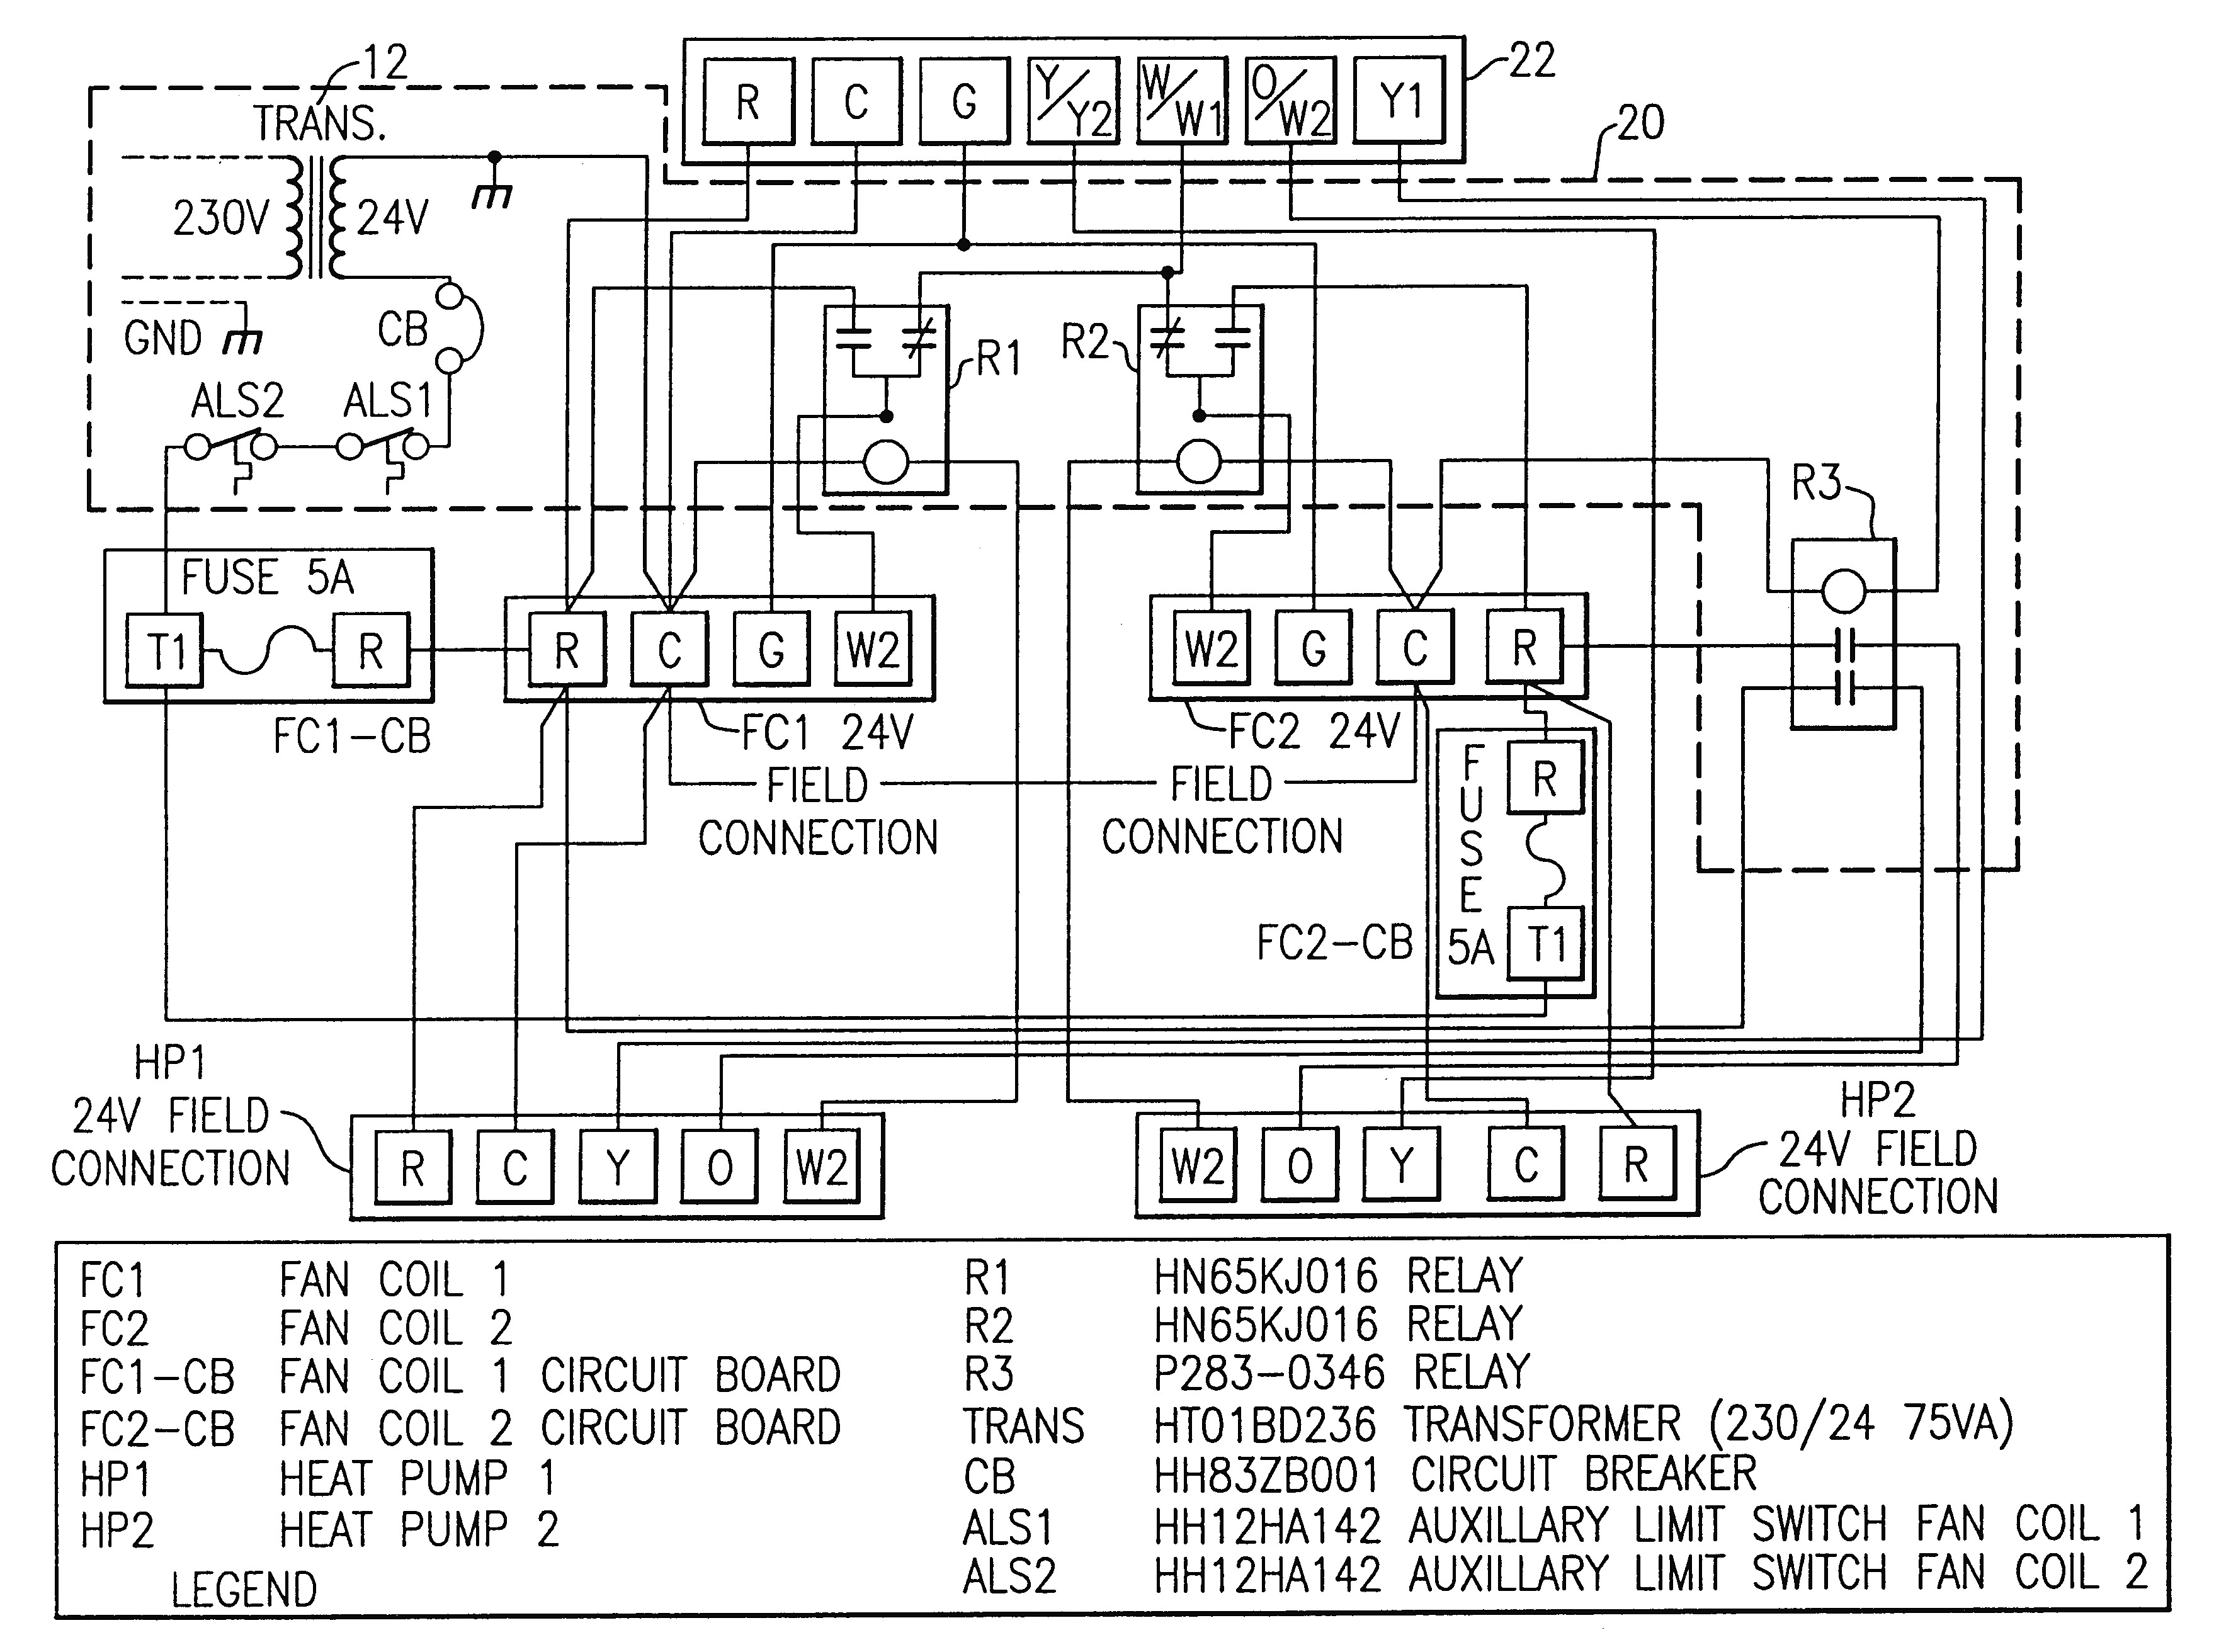 Carrier thermostat Wiring Diagram Awesome Carrier Heating thermostat Wiring Diagram Contemporary Cool Of Carrier thermostat Wiring Diagram